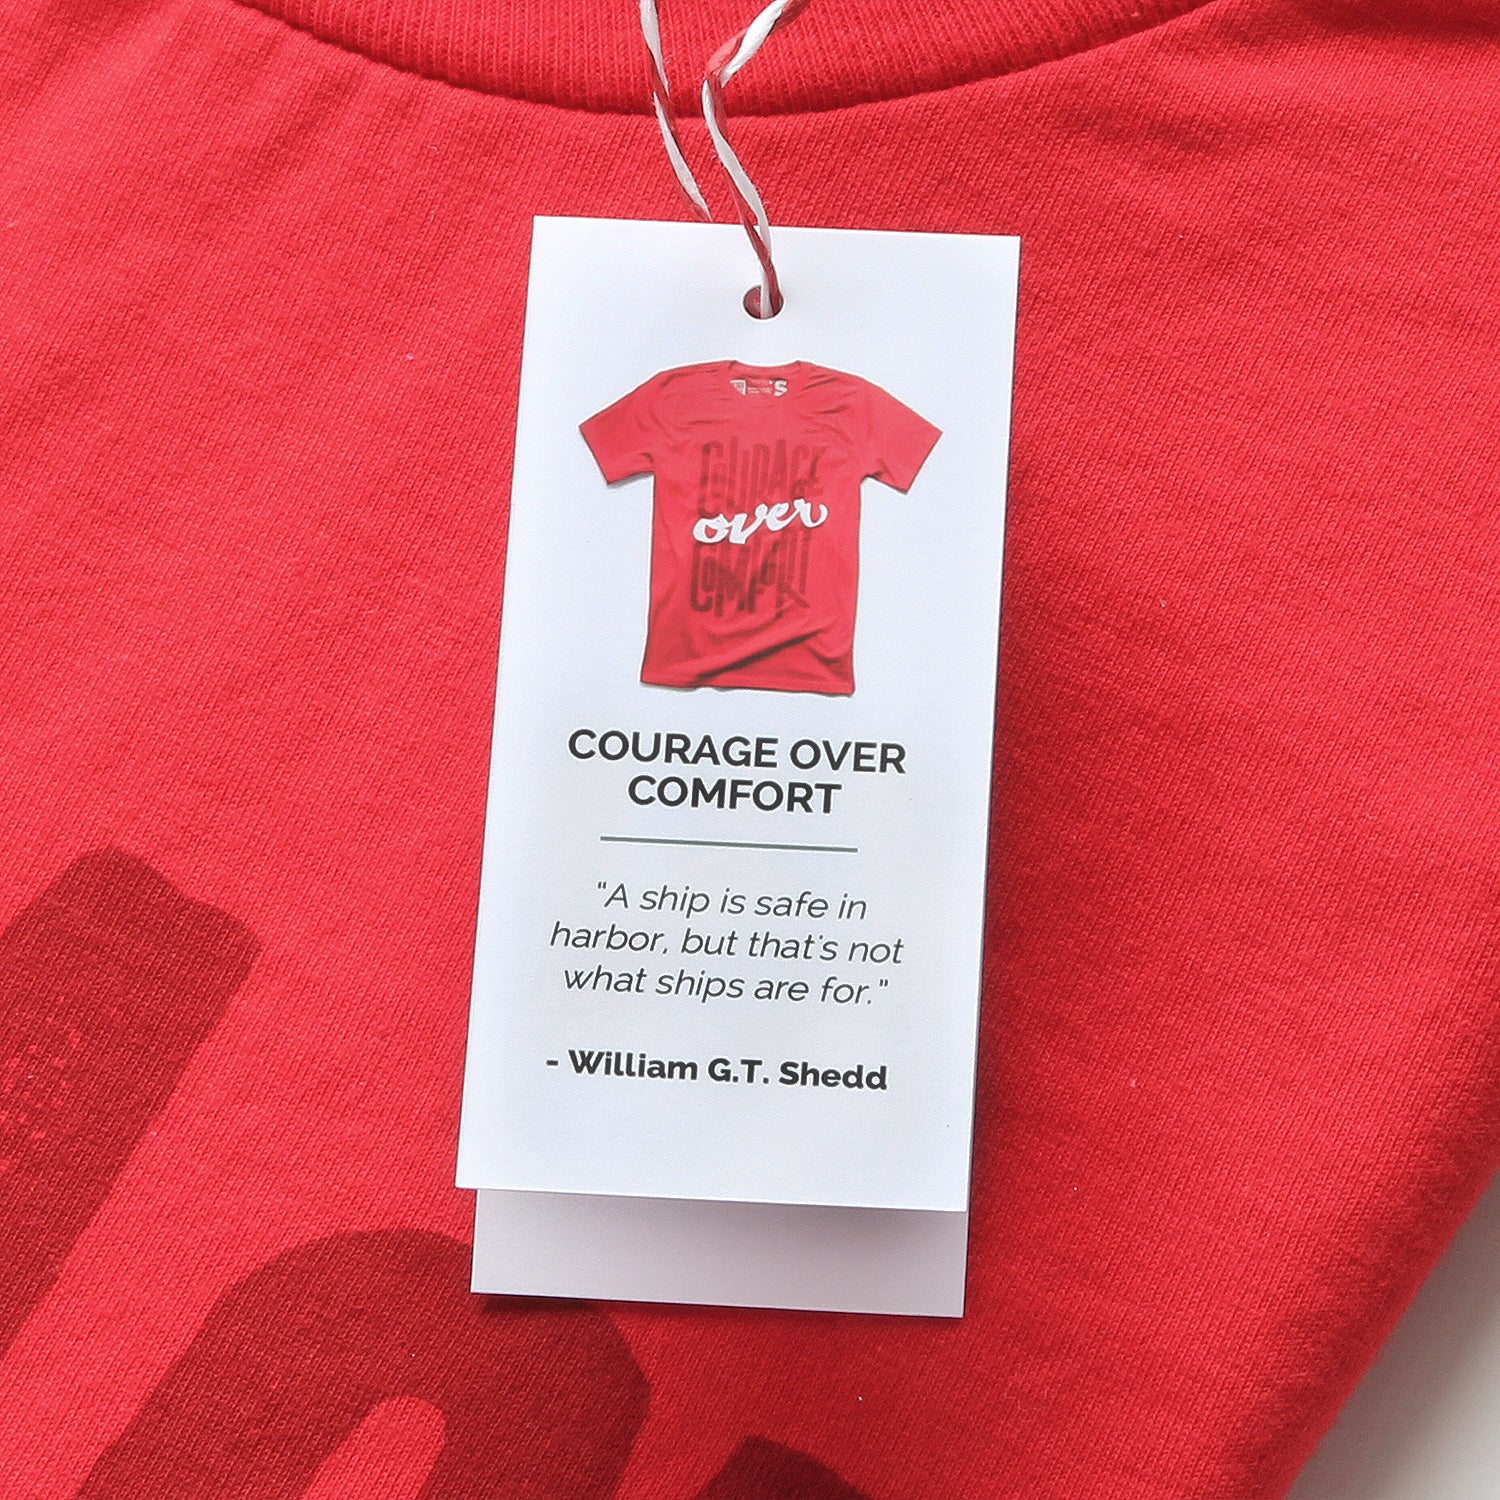 Courage Over Comfort - Minimal t-shirt design by Design Different